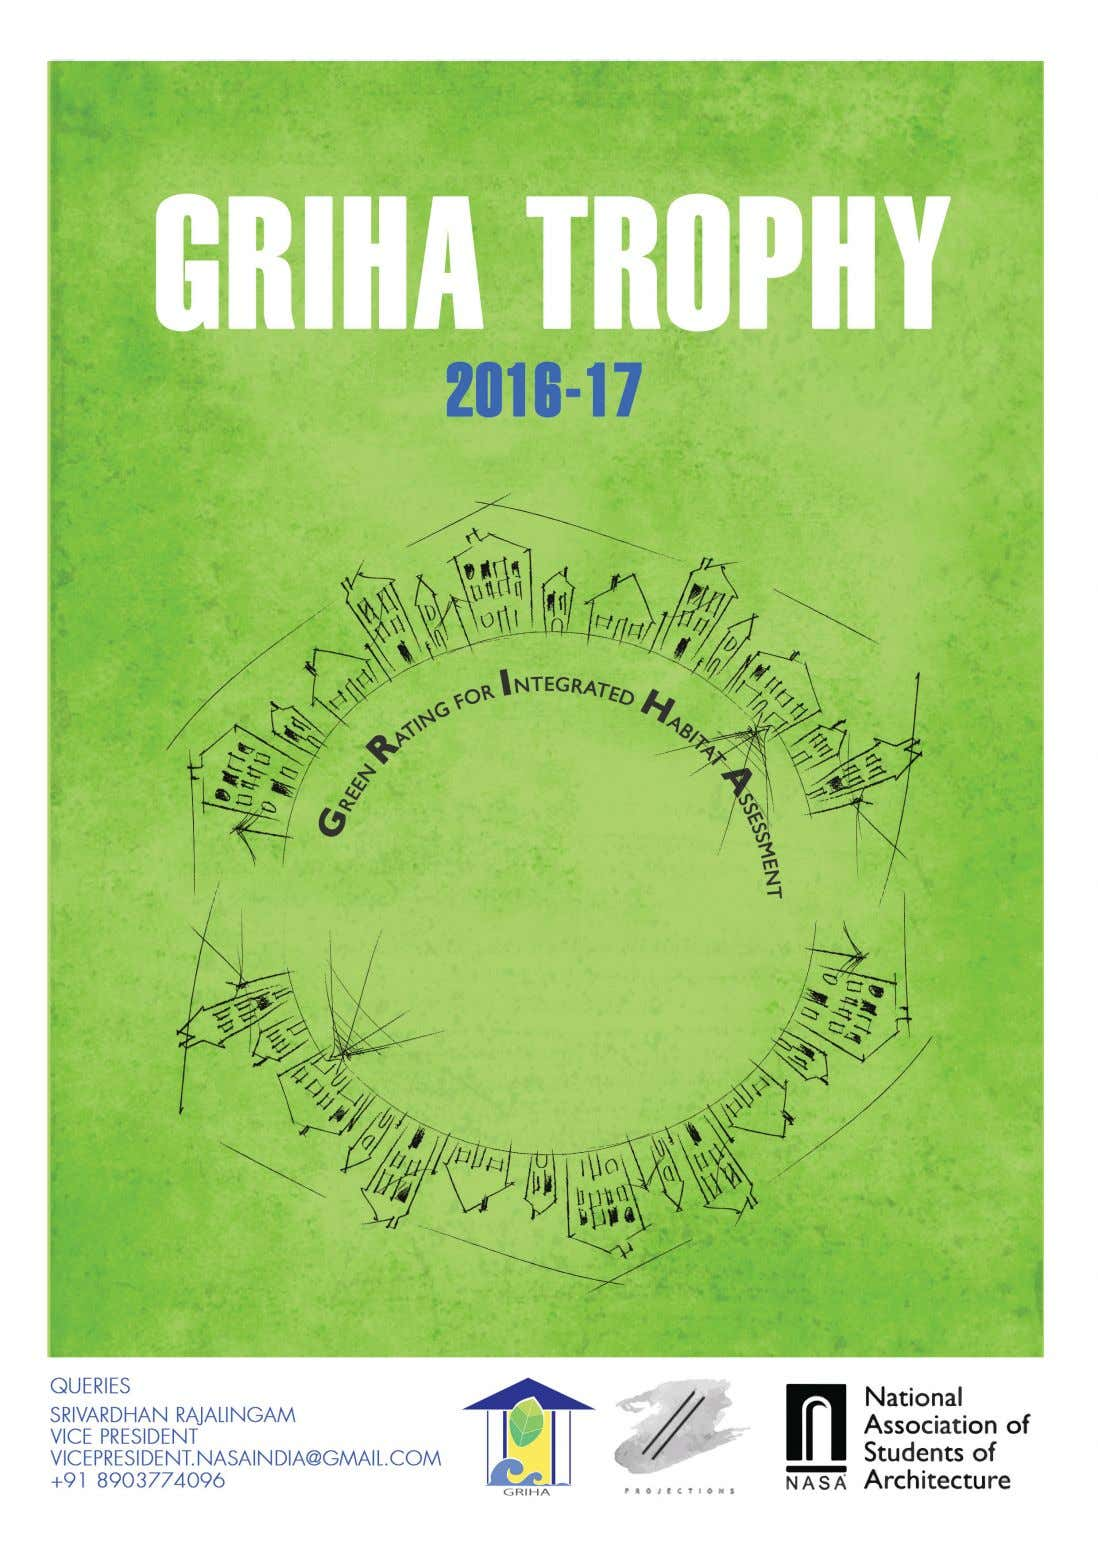 GRIHA TROPHY || 2016 - 17 National Association of Students of Architecture GRIHA Trophy 2016-17